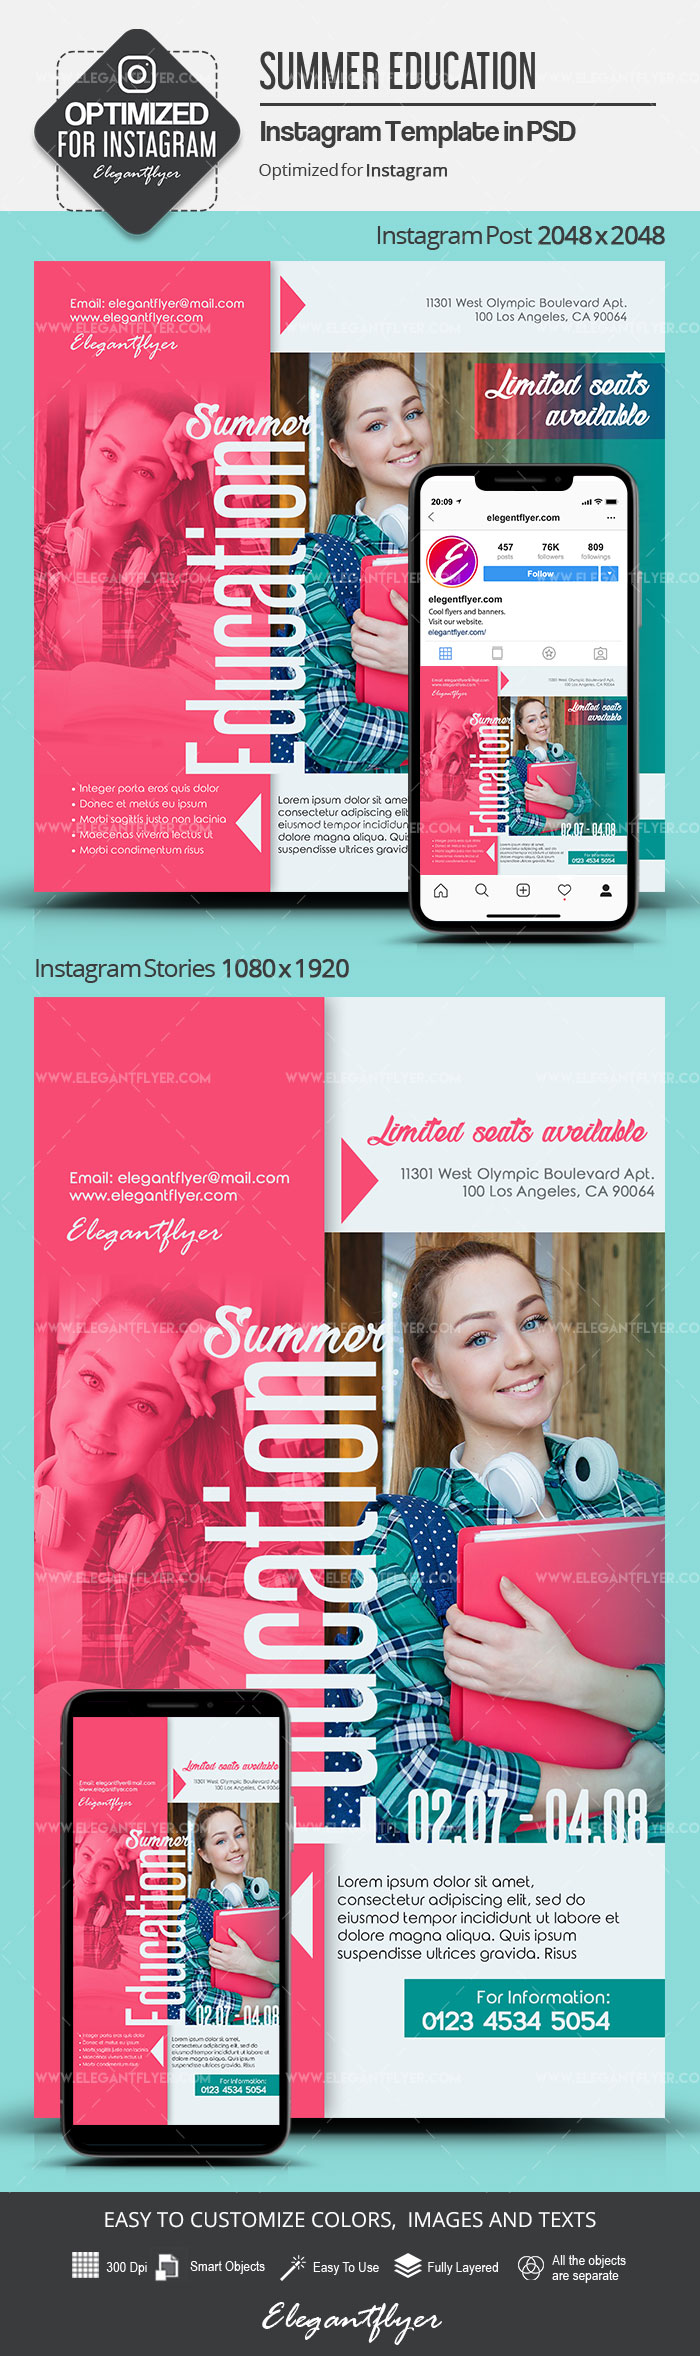 Summer Education – Instagram Stories Template in PSD + Post Templates